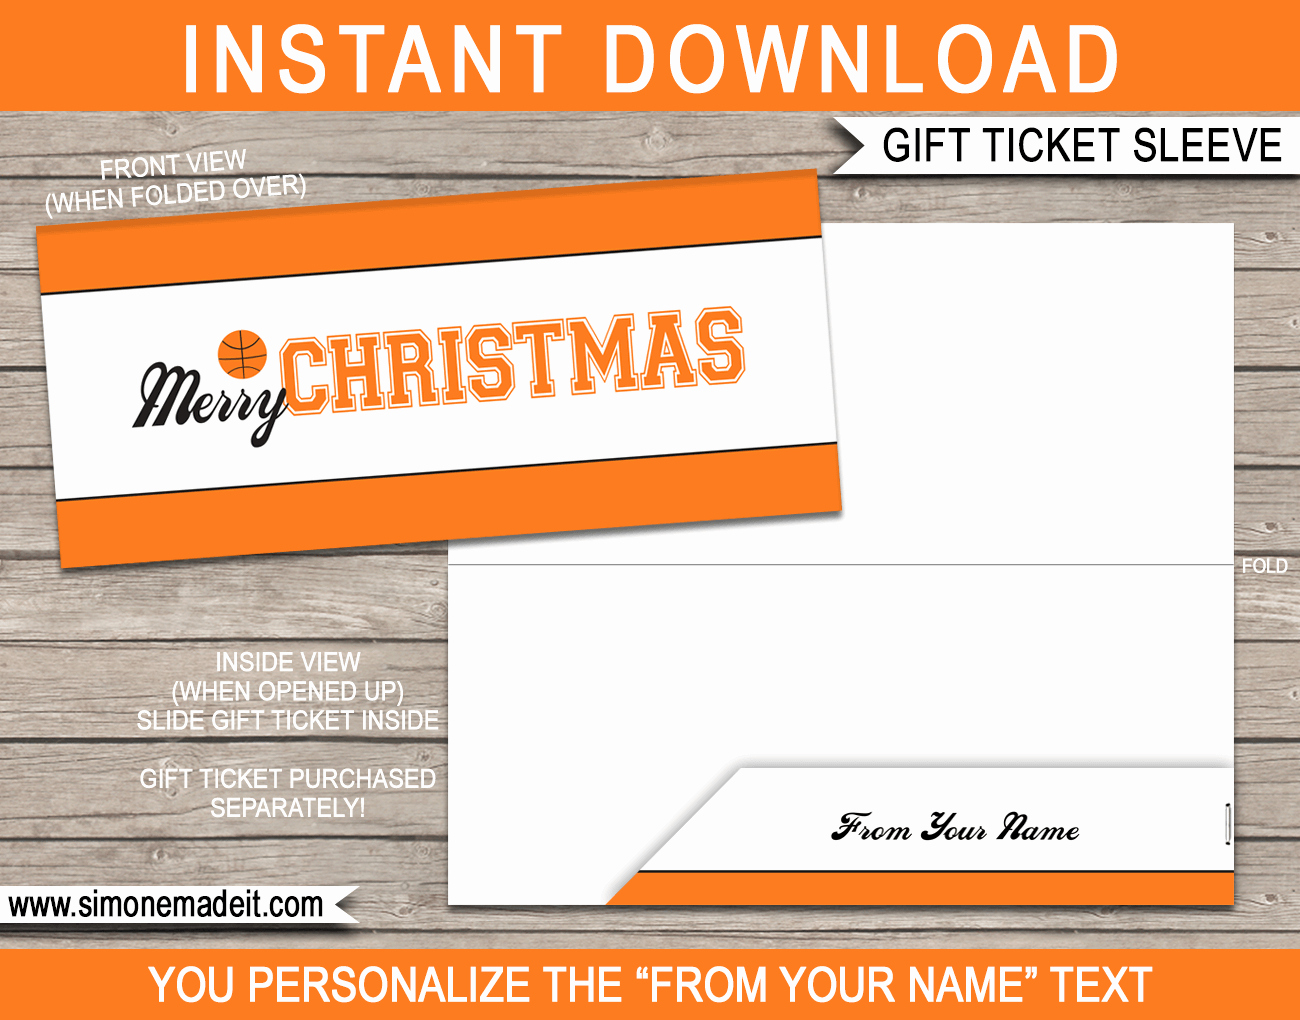 Basketball Ticket Template New Basketball Christmas Gift Ticket Sleeve